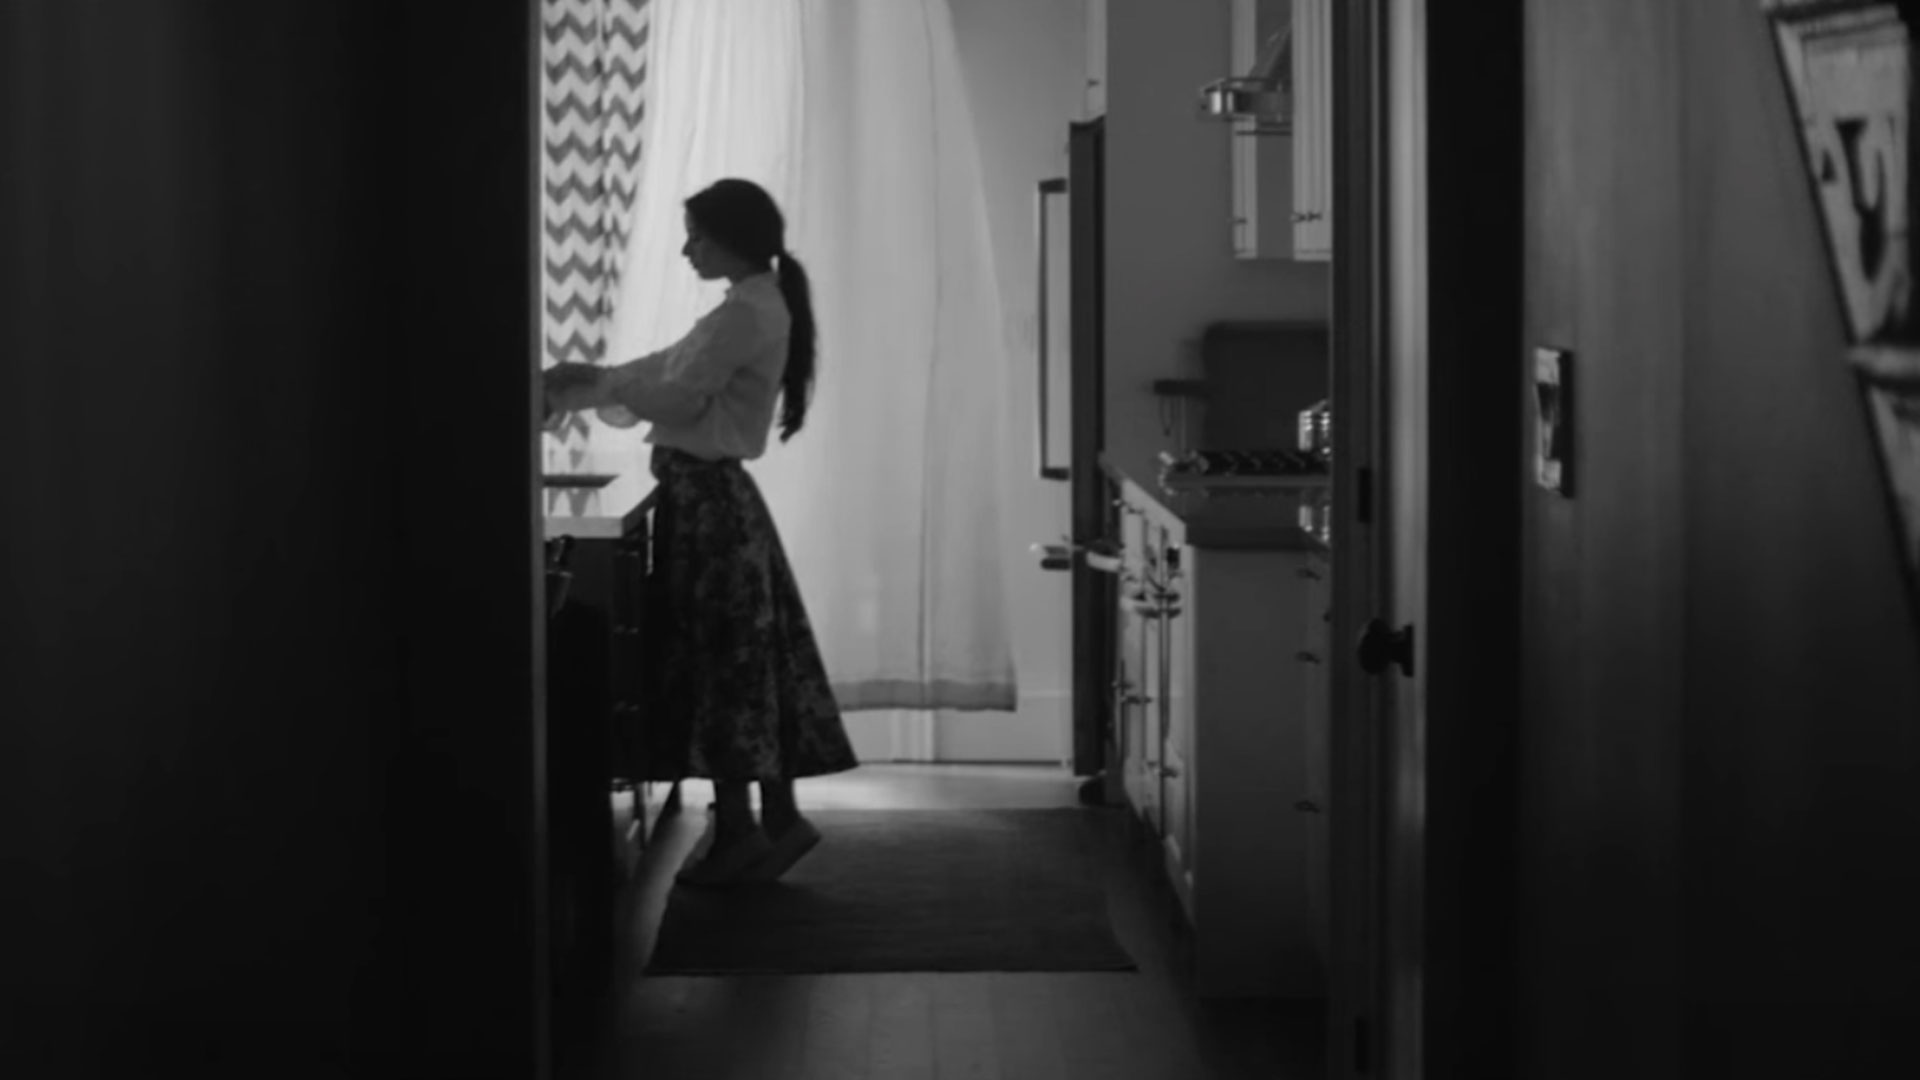 Black and white photo of a woman in a kitchen in the distance from the hallway